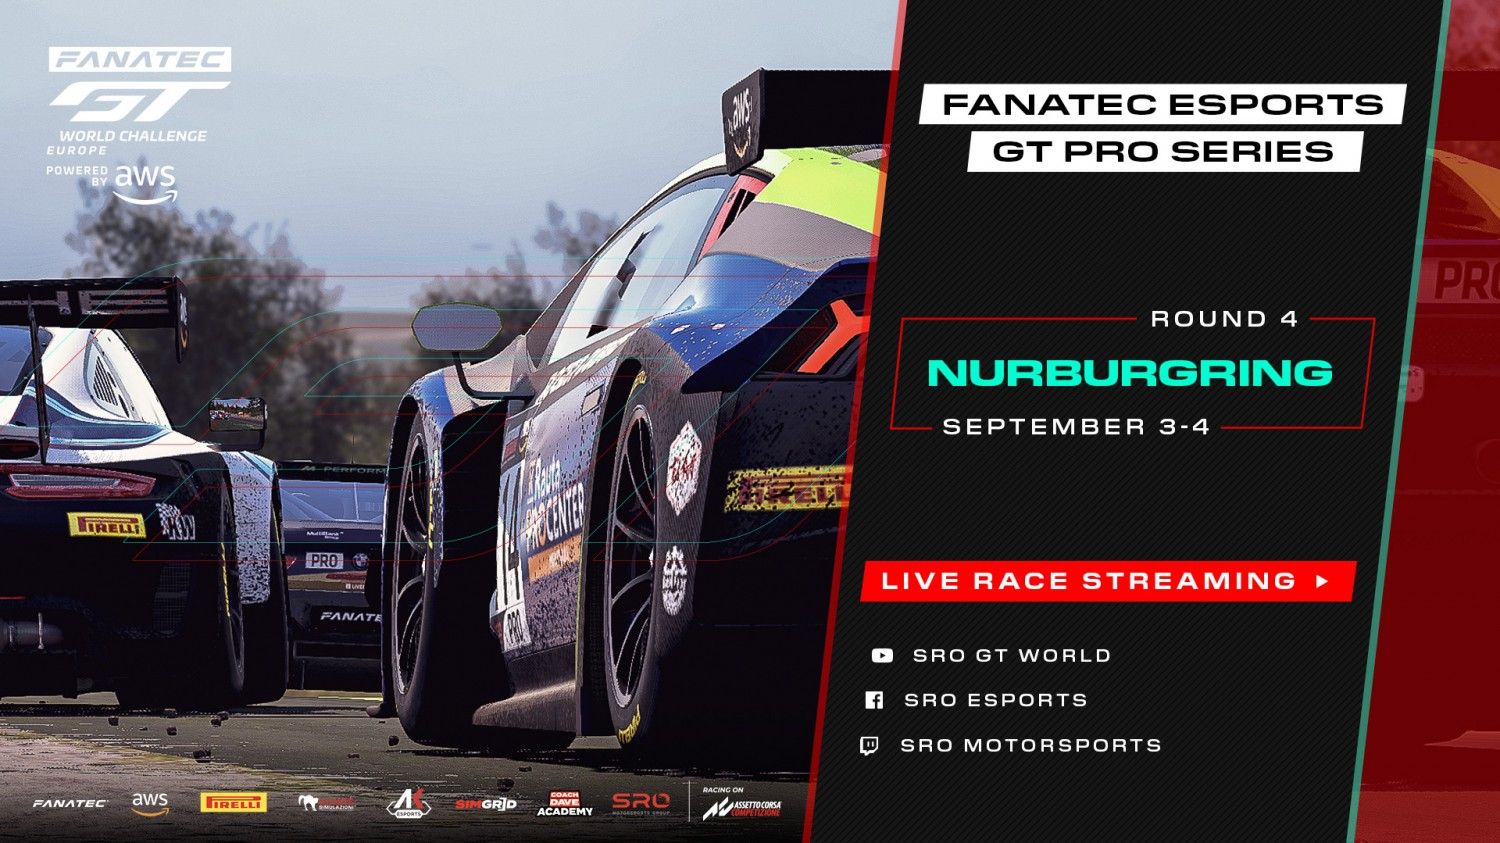 Fanatec Esports GT Pro Series gears up for The Green Hell